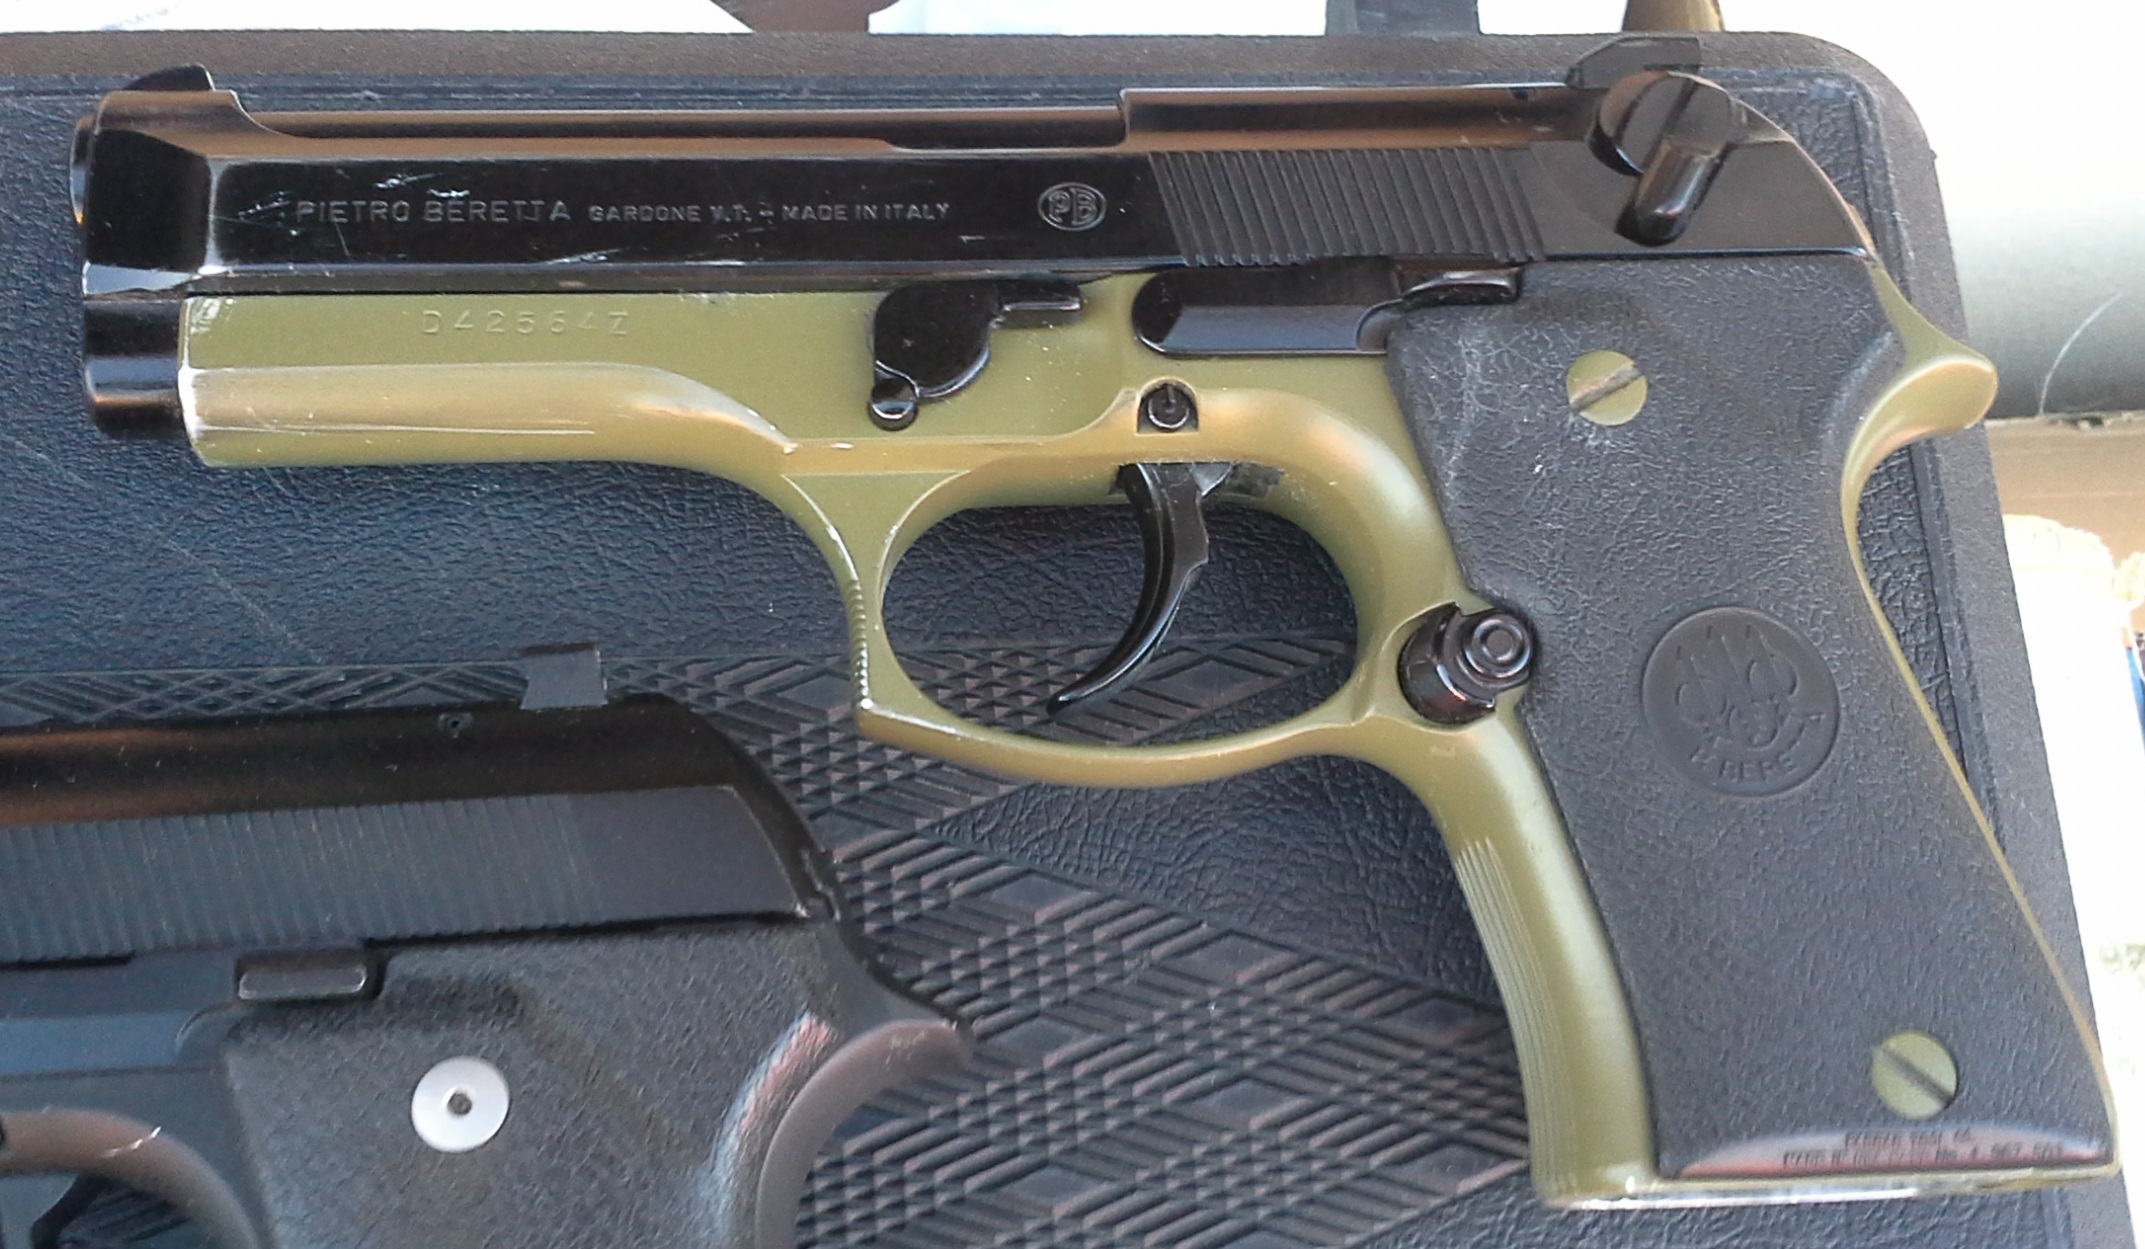 Replacement Front Sight for Beretta 92 compact